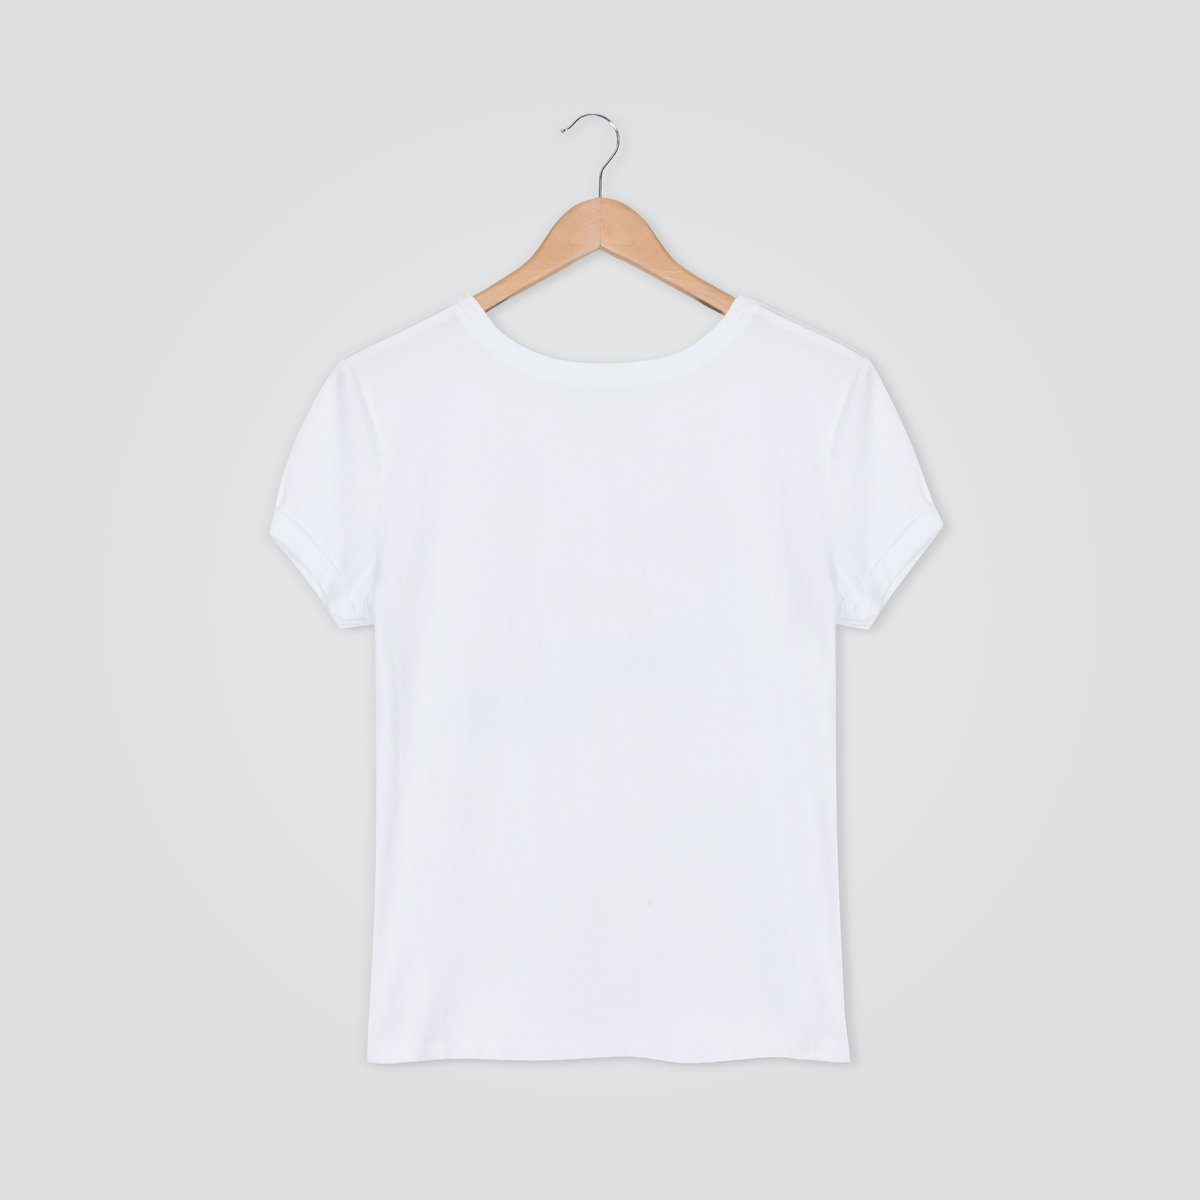 Perspective T-Shirt - White image 4